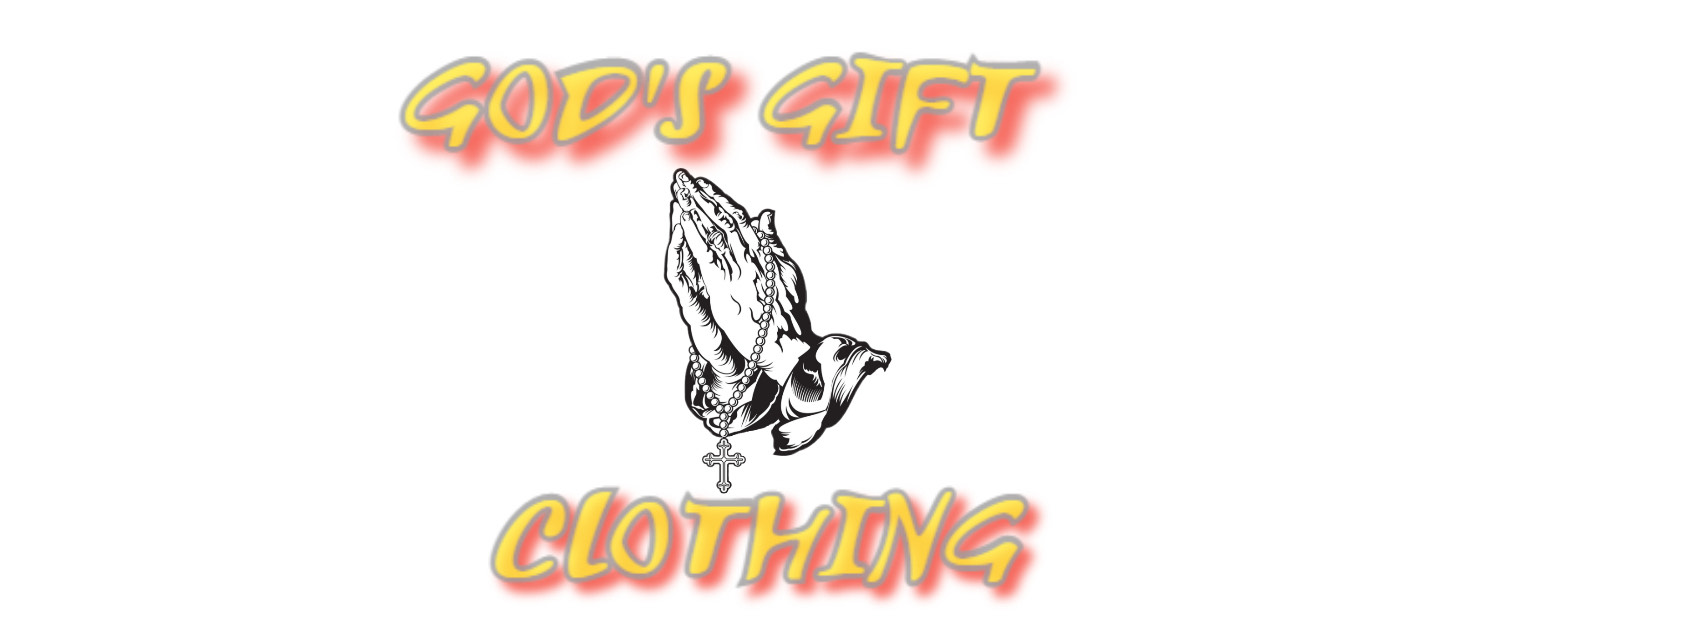 God's Gift Clothing and Production